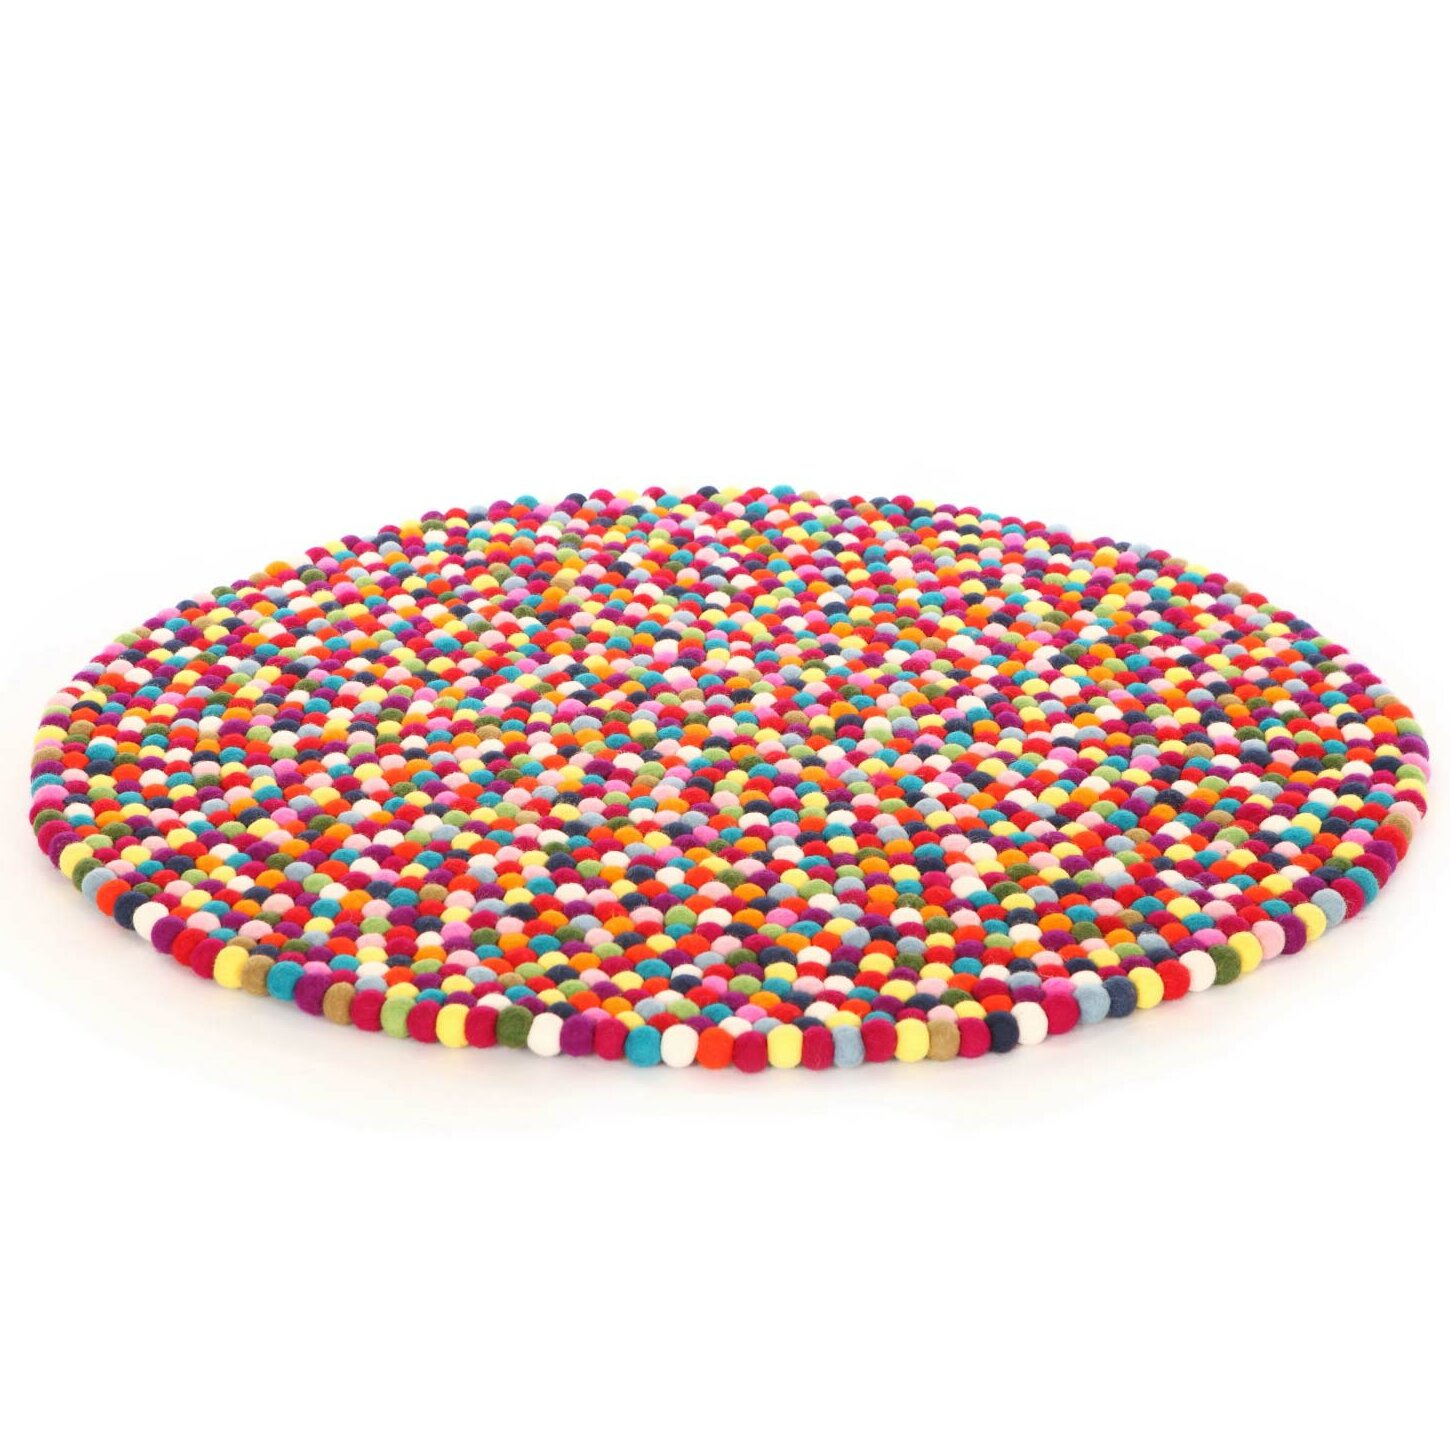 Walk on me happy as larry original felt ball kids round for Round rugs for kids